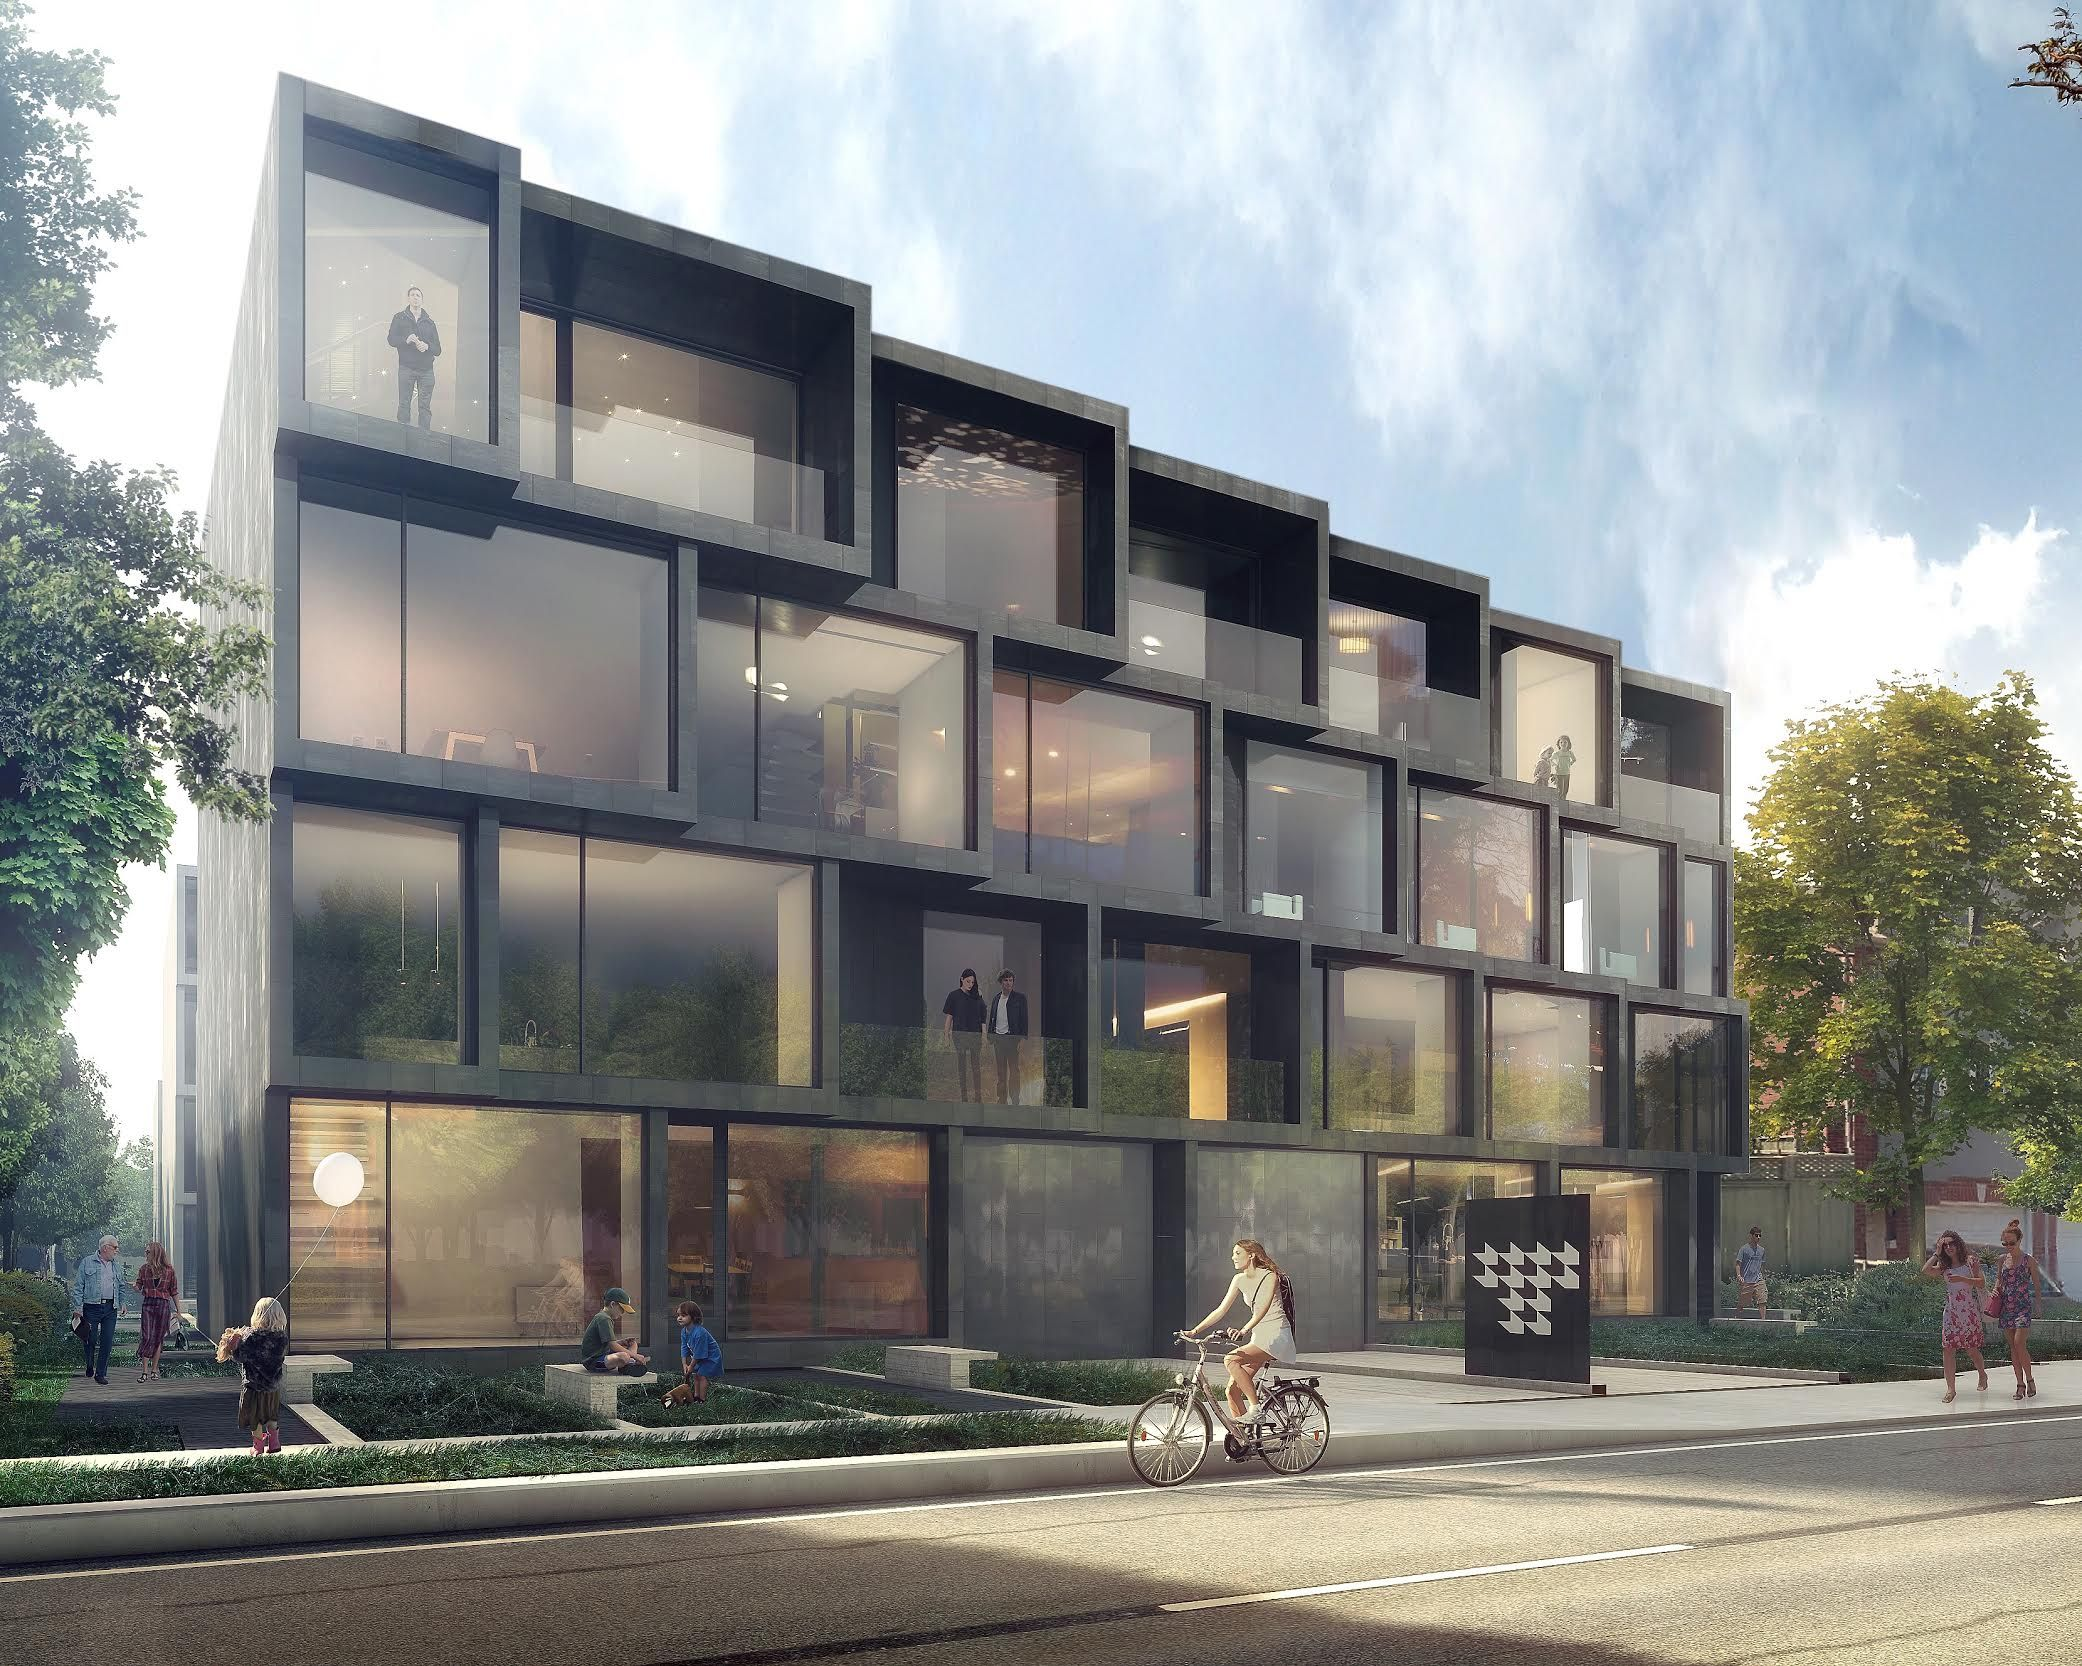 Award winning house design architects google search us for Residential architect design awards